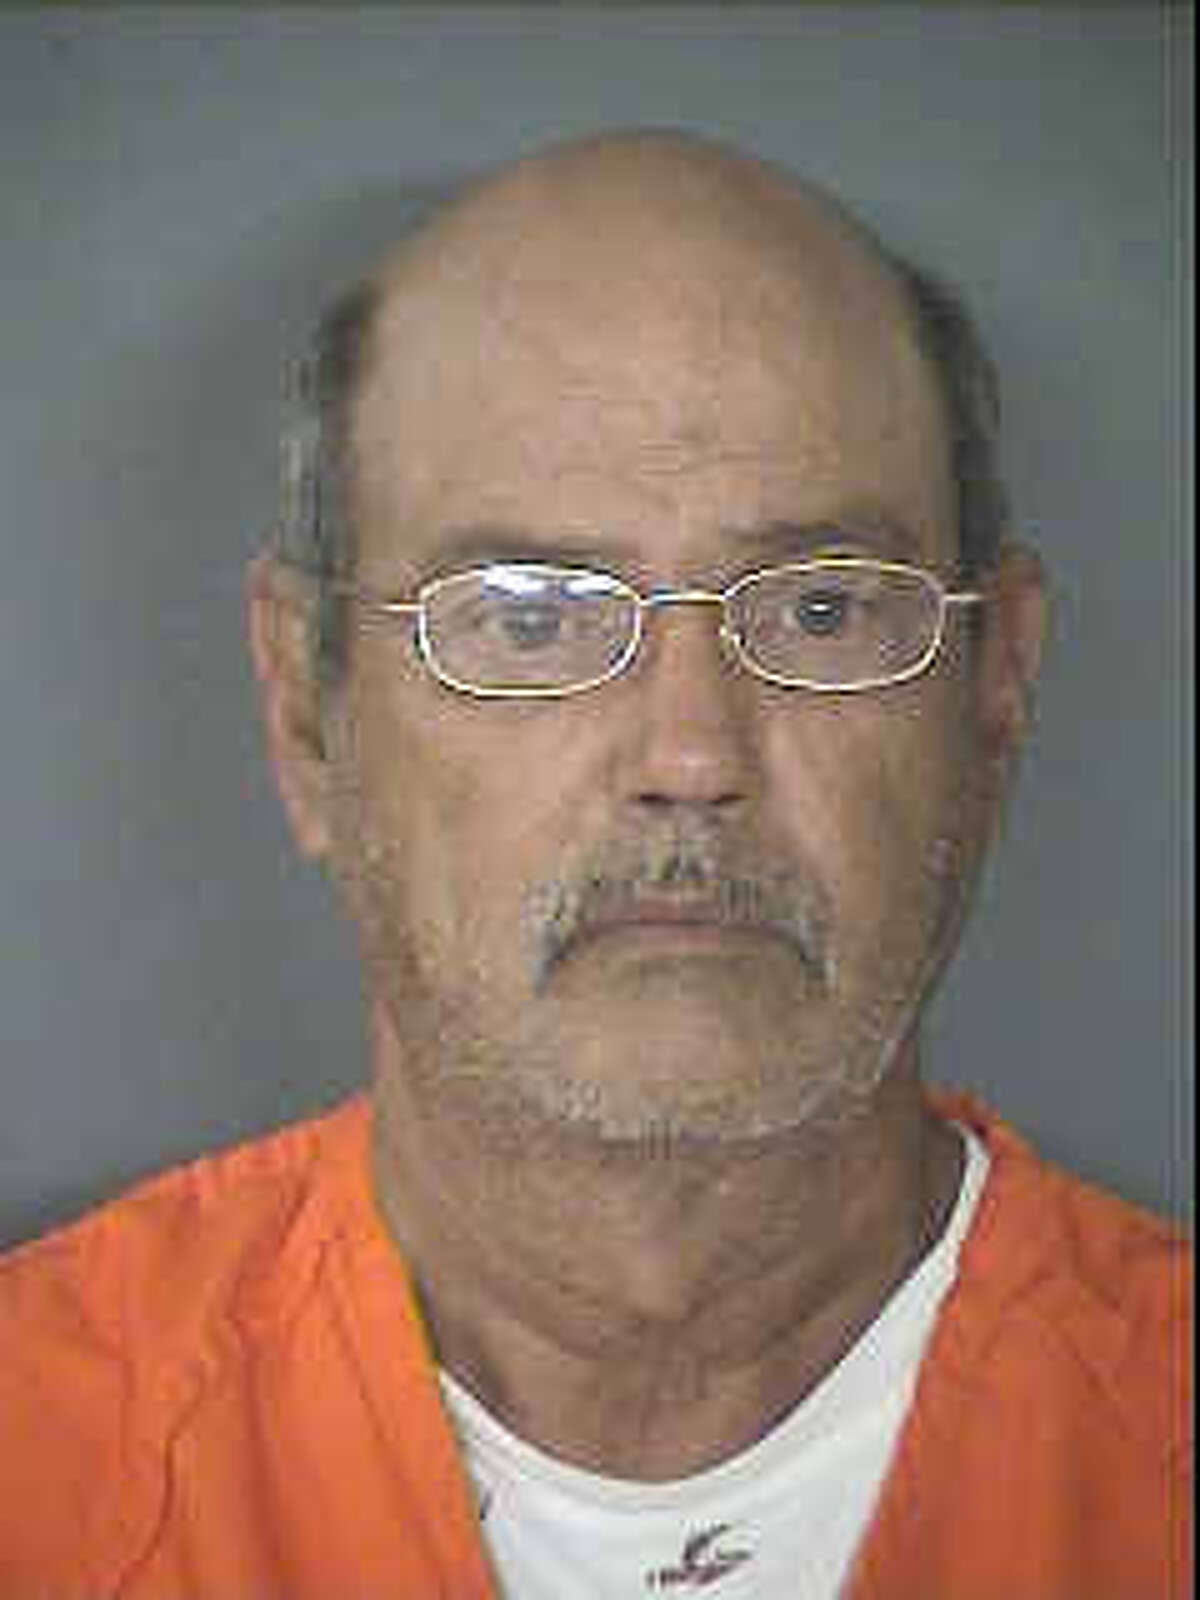 Jesus Lopez, 61, has been charged with money laundering. An arrest warrant affidavit states he conned six people into believing he could fix their immigration status.